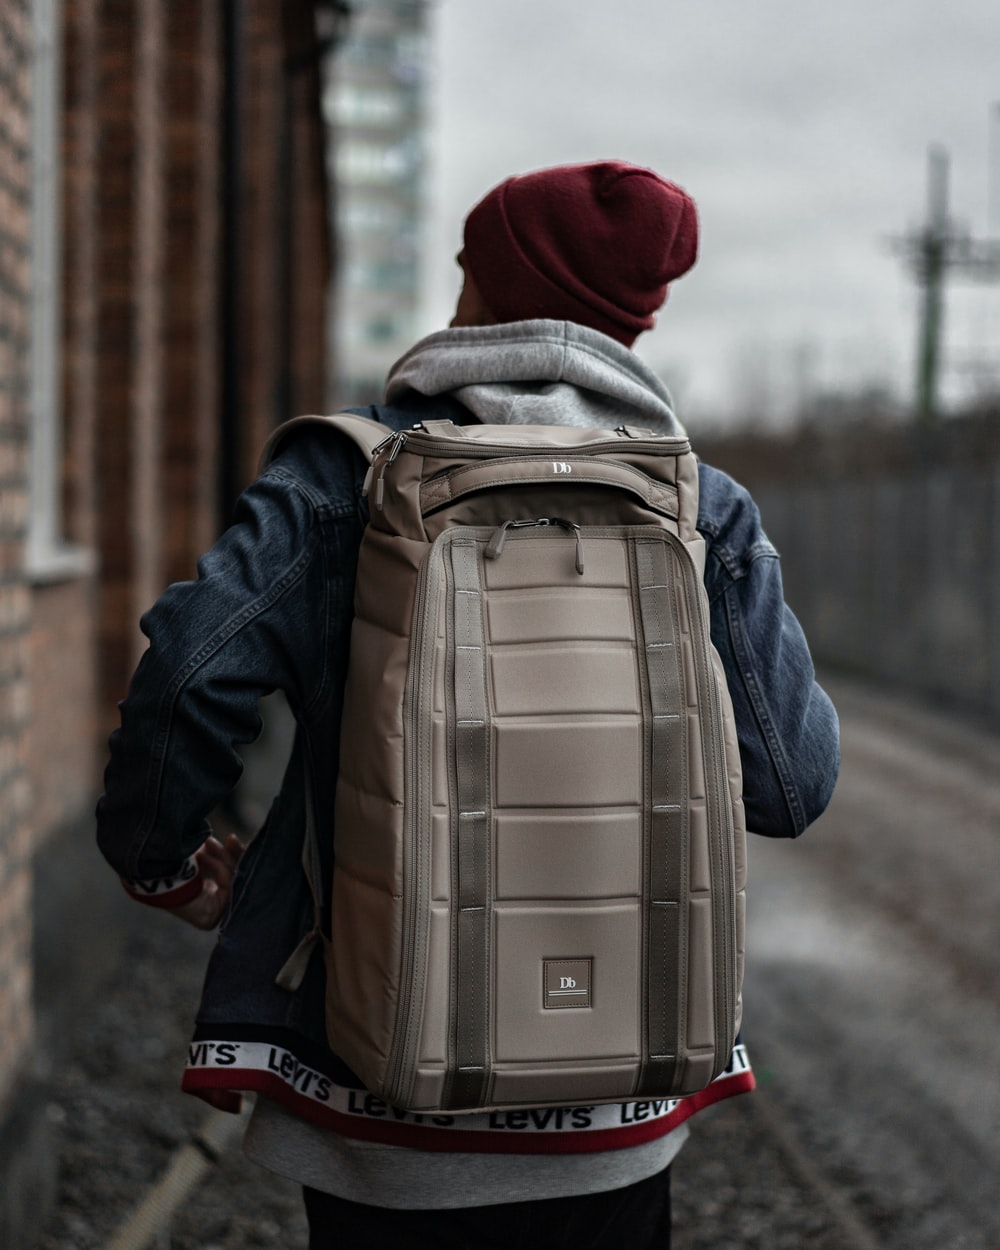 person wearing grey backpack